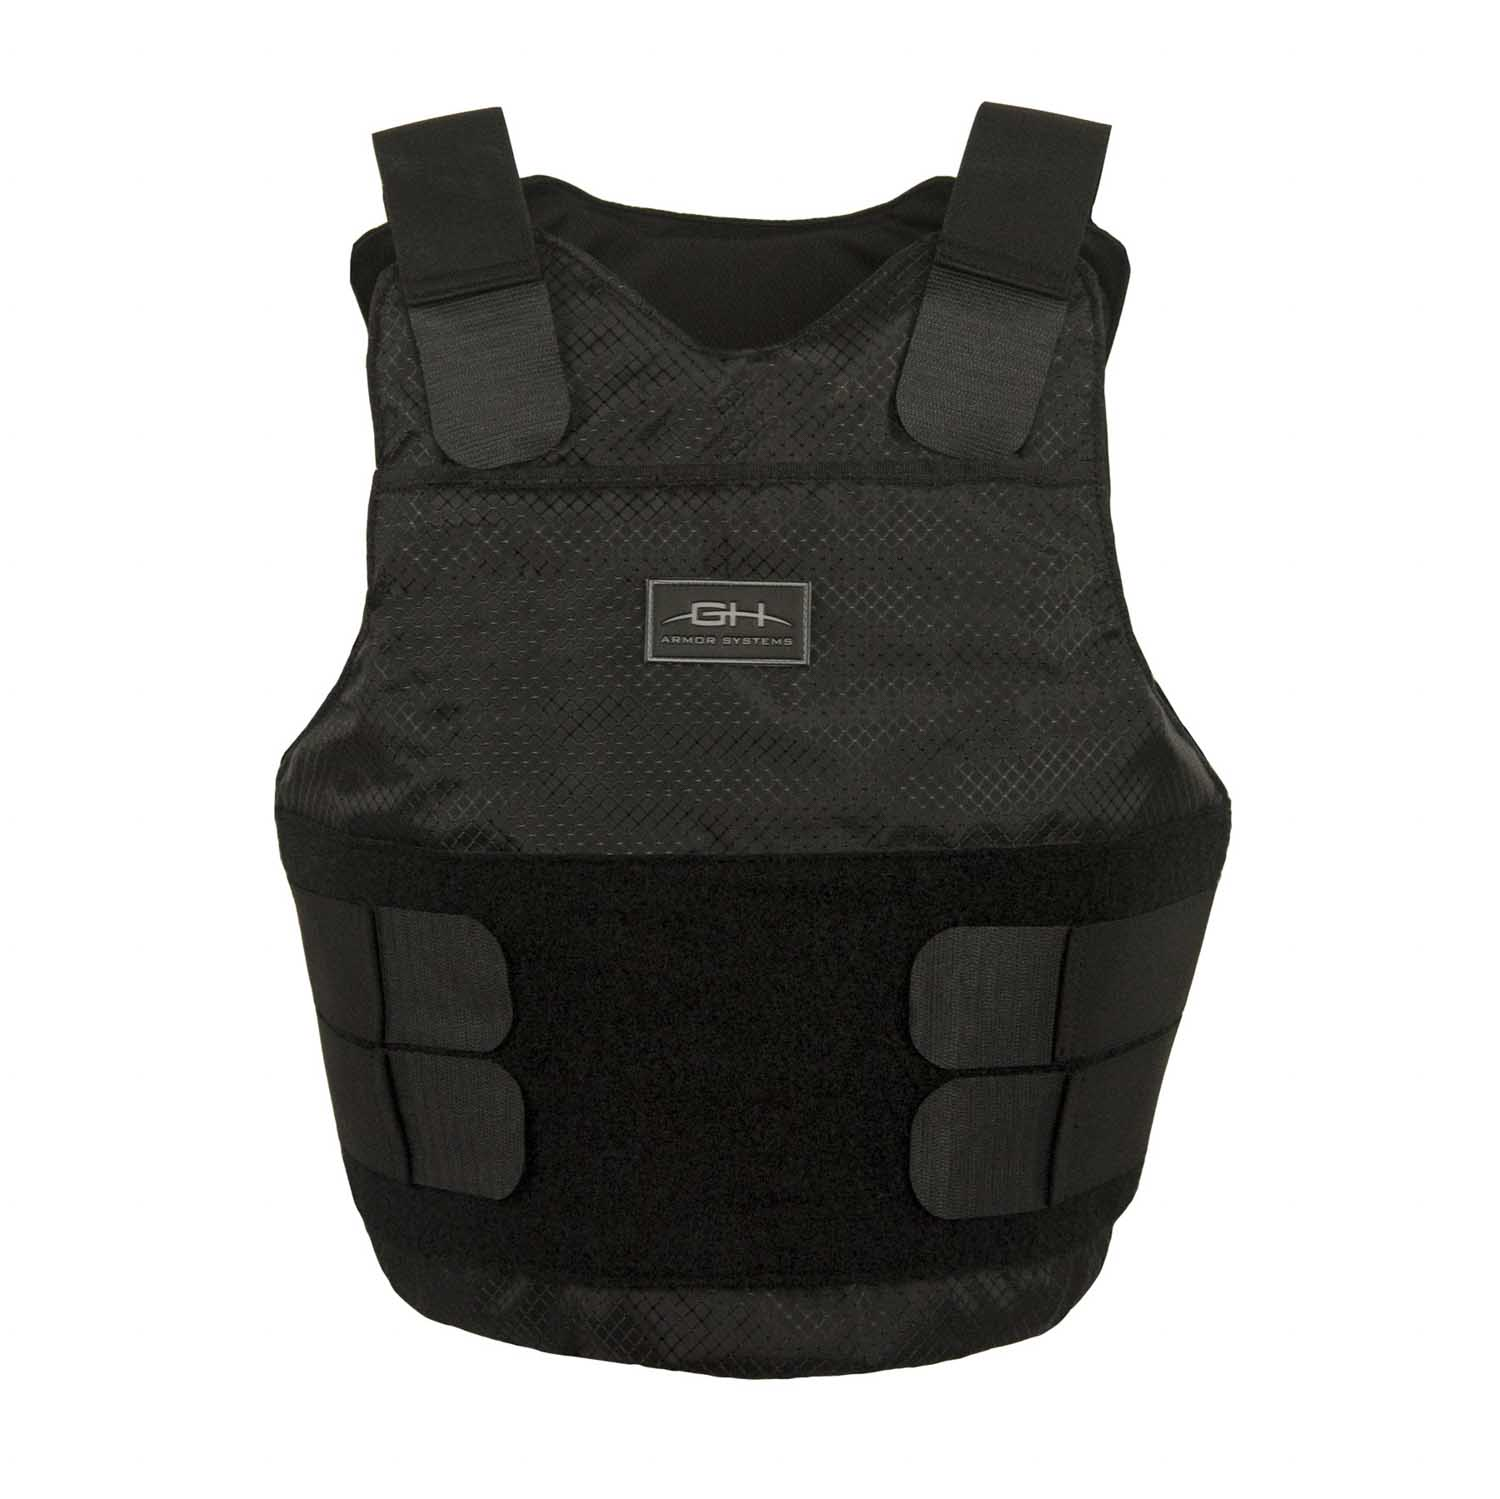 GH Armor ProX II Body Armor Package